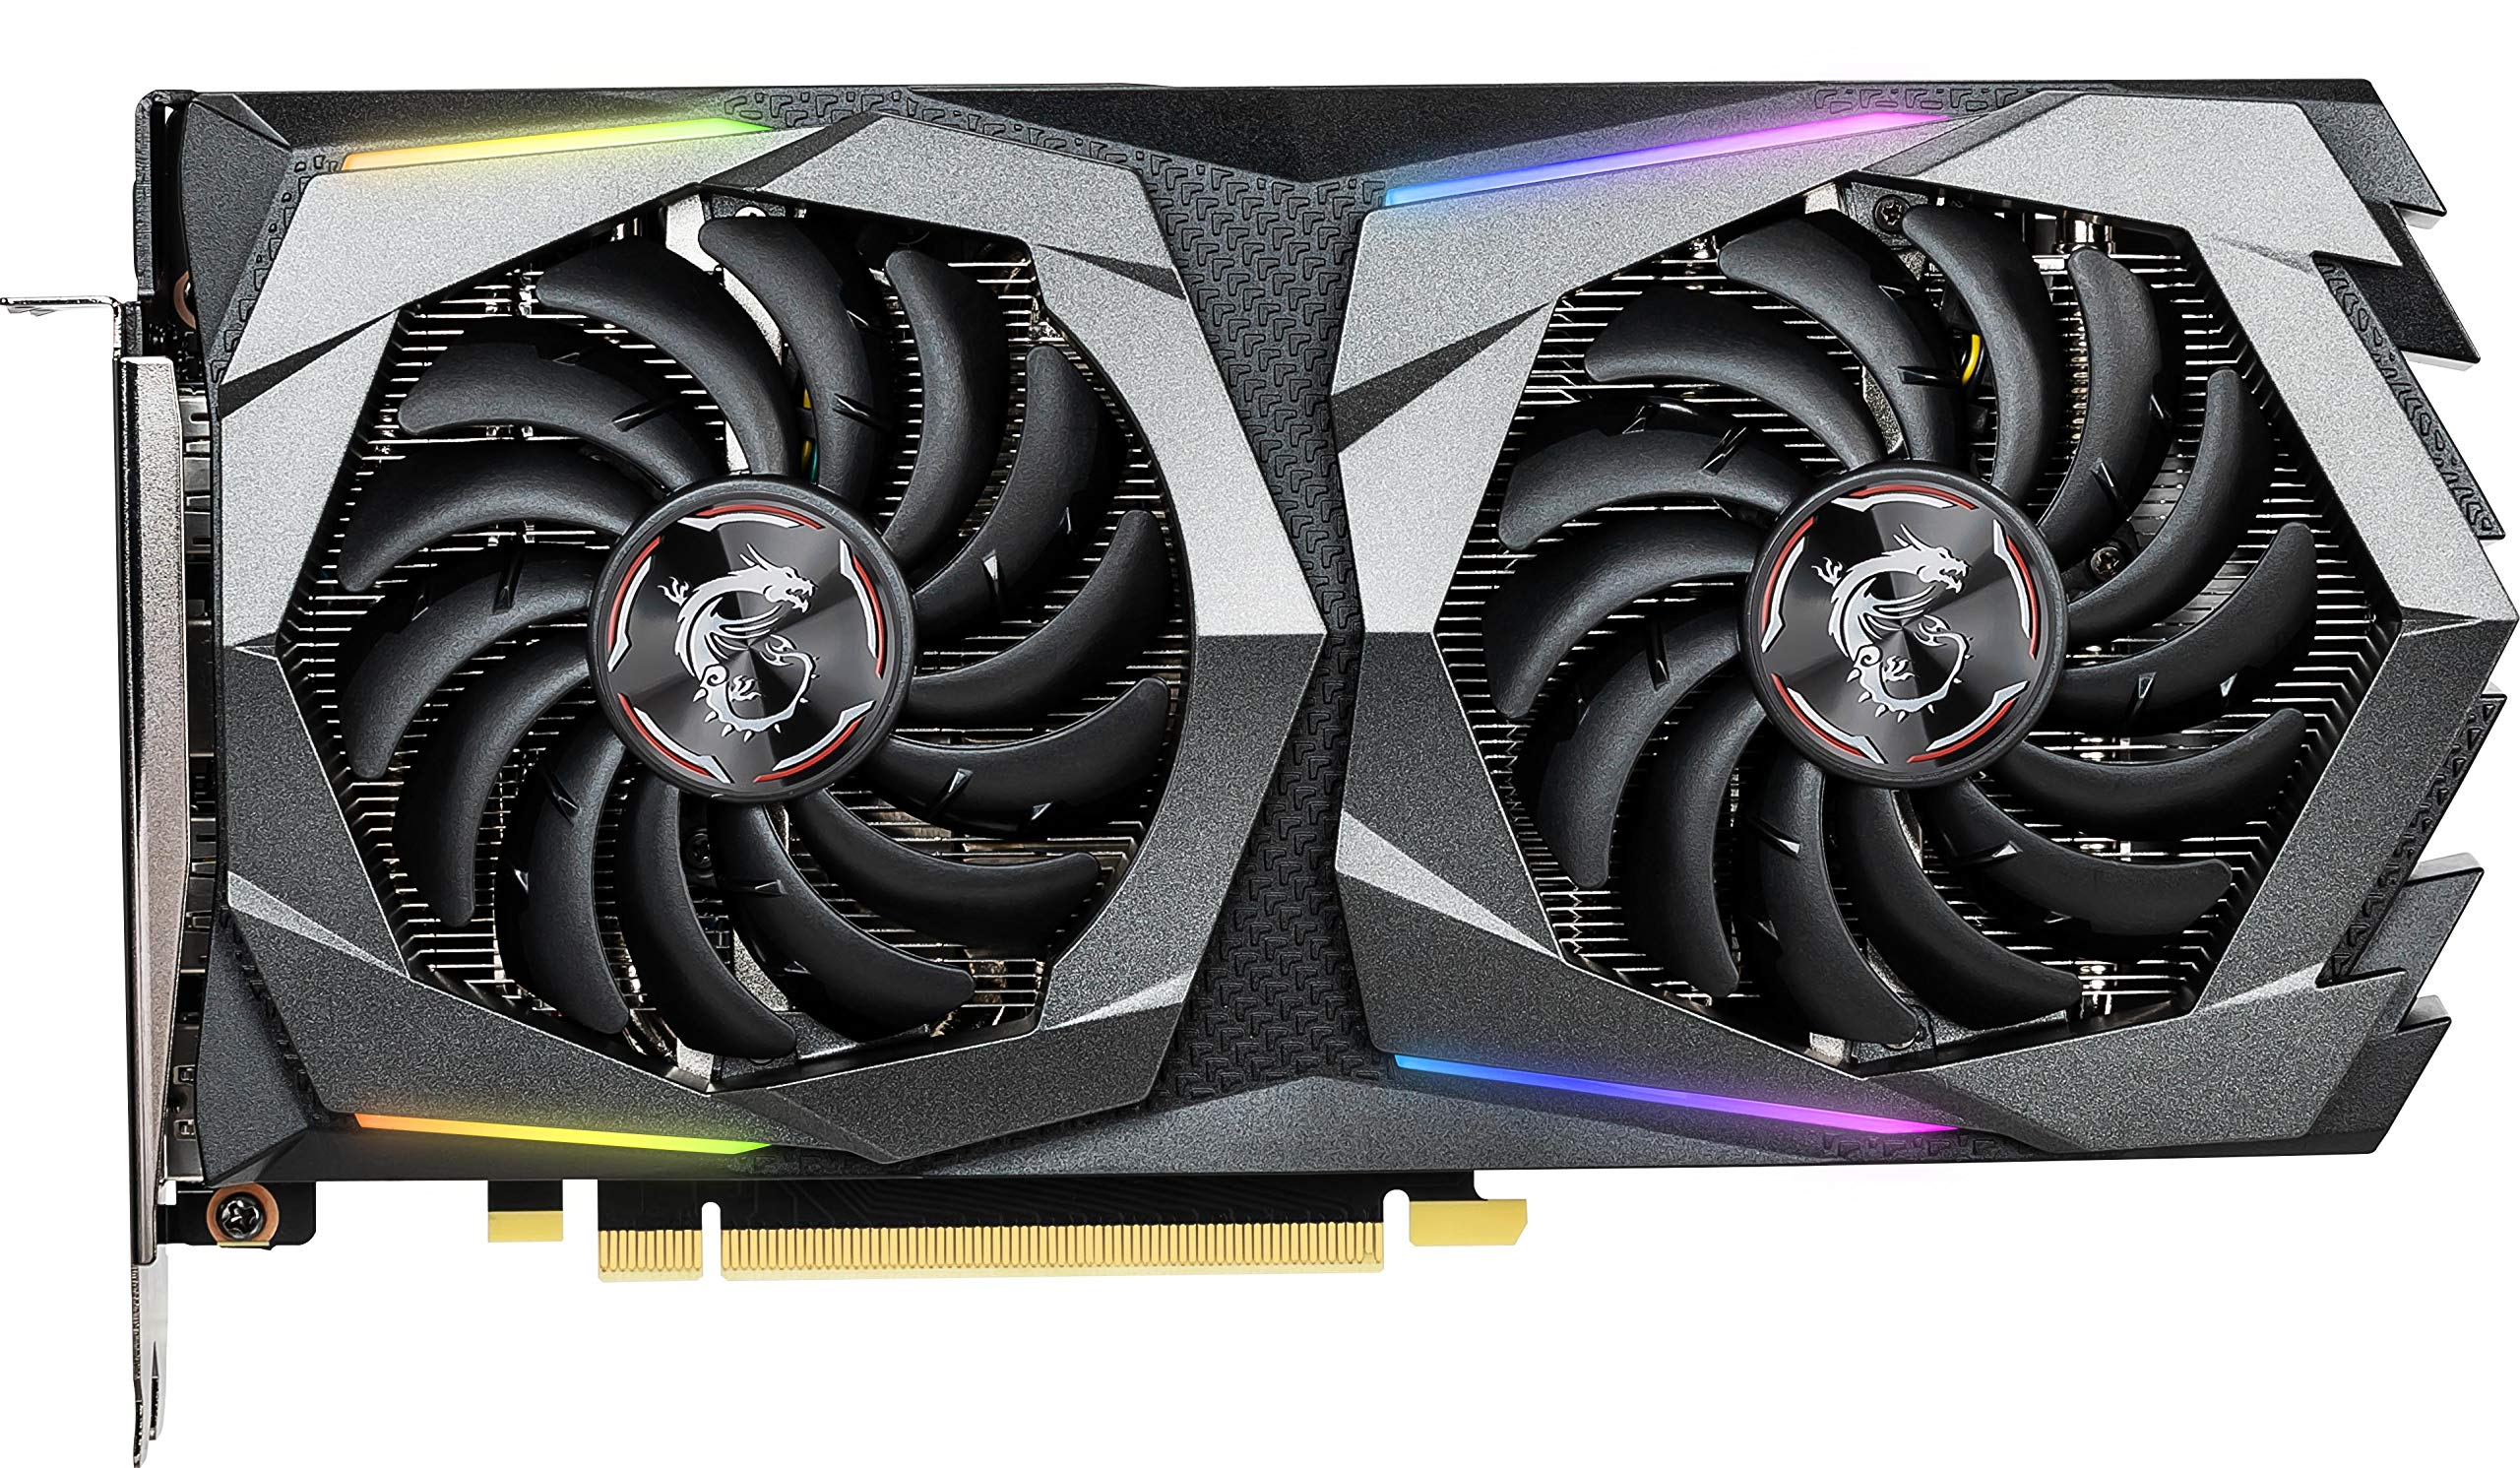 MSI Gaming GeForce GTX 1660 Ti 192-bit HDMI/DP 6GB GDRR6 HDCP Support DirectX 12 Dual Fan VR Ready OC Graphics Card (GTX 1660 TI Gaming X 6G) by MSI (Image #2)